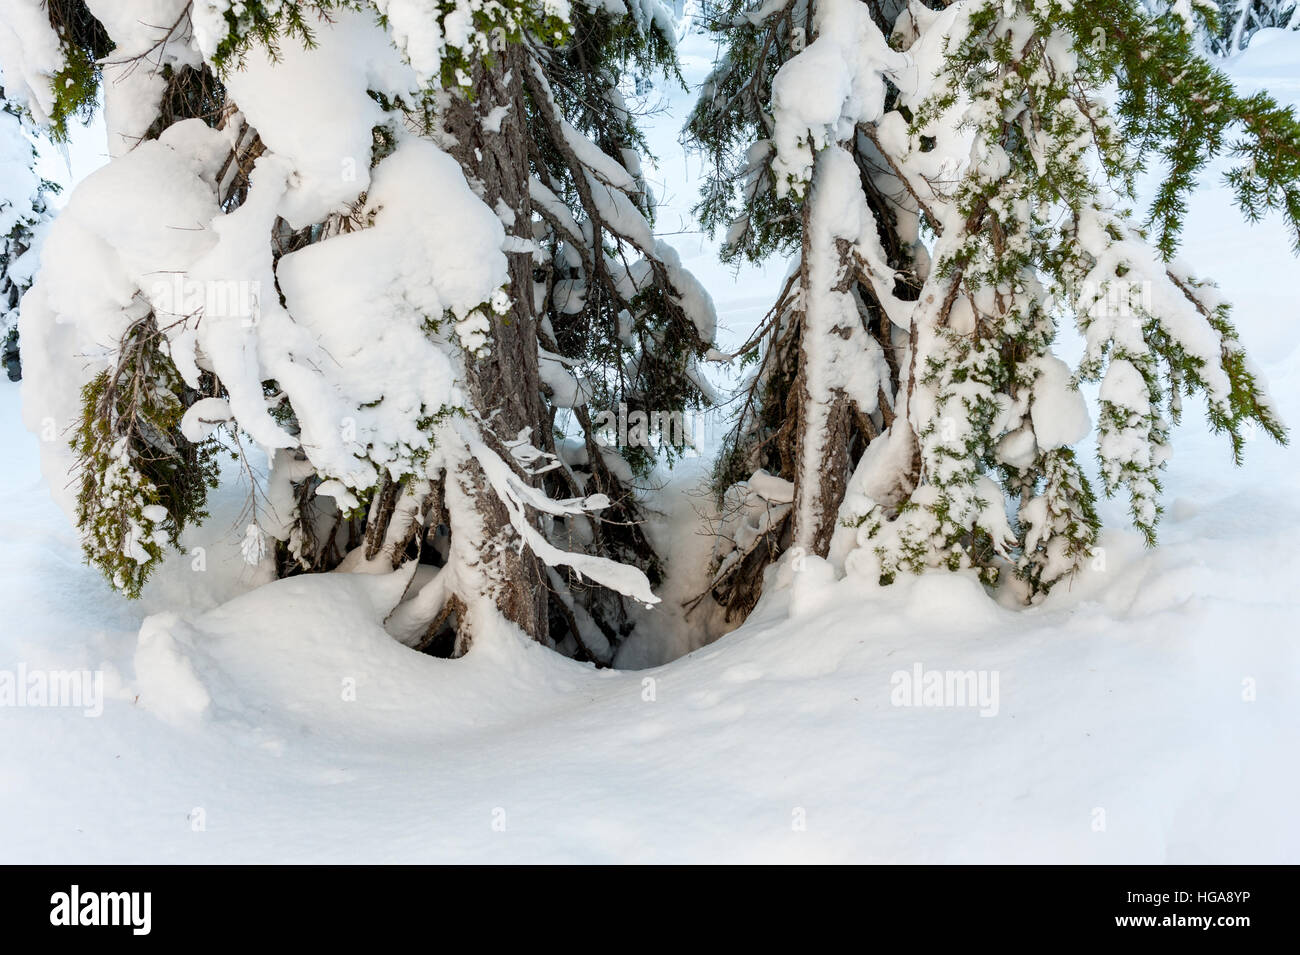 A tree well, a void area of loose snow around the trunk of a tree enveloped in deep snow, is a danger to skiers - Stock Image